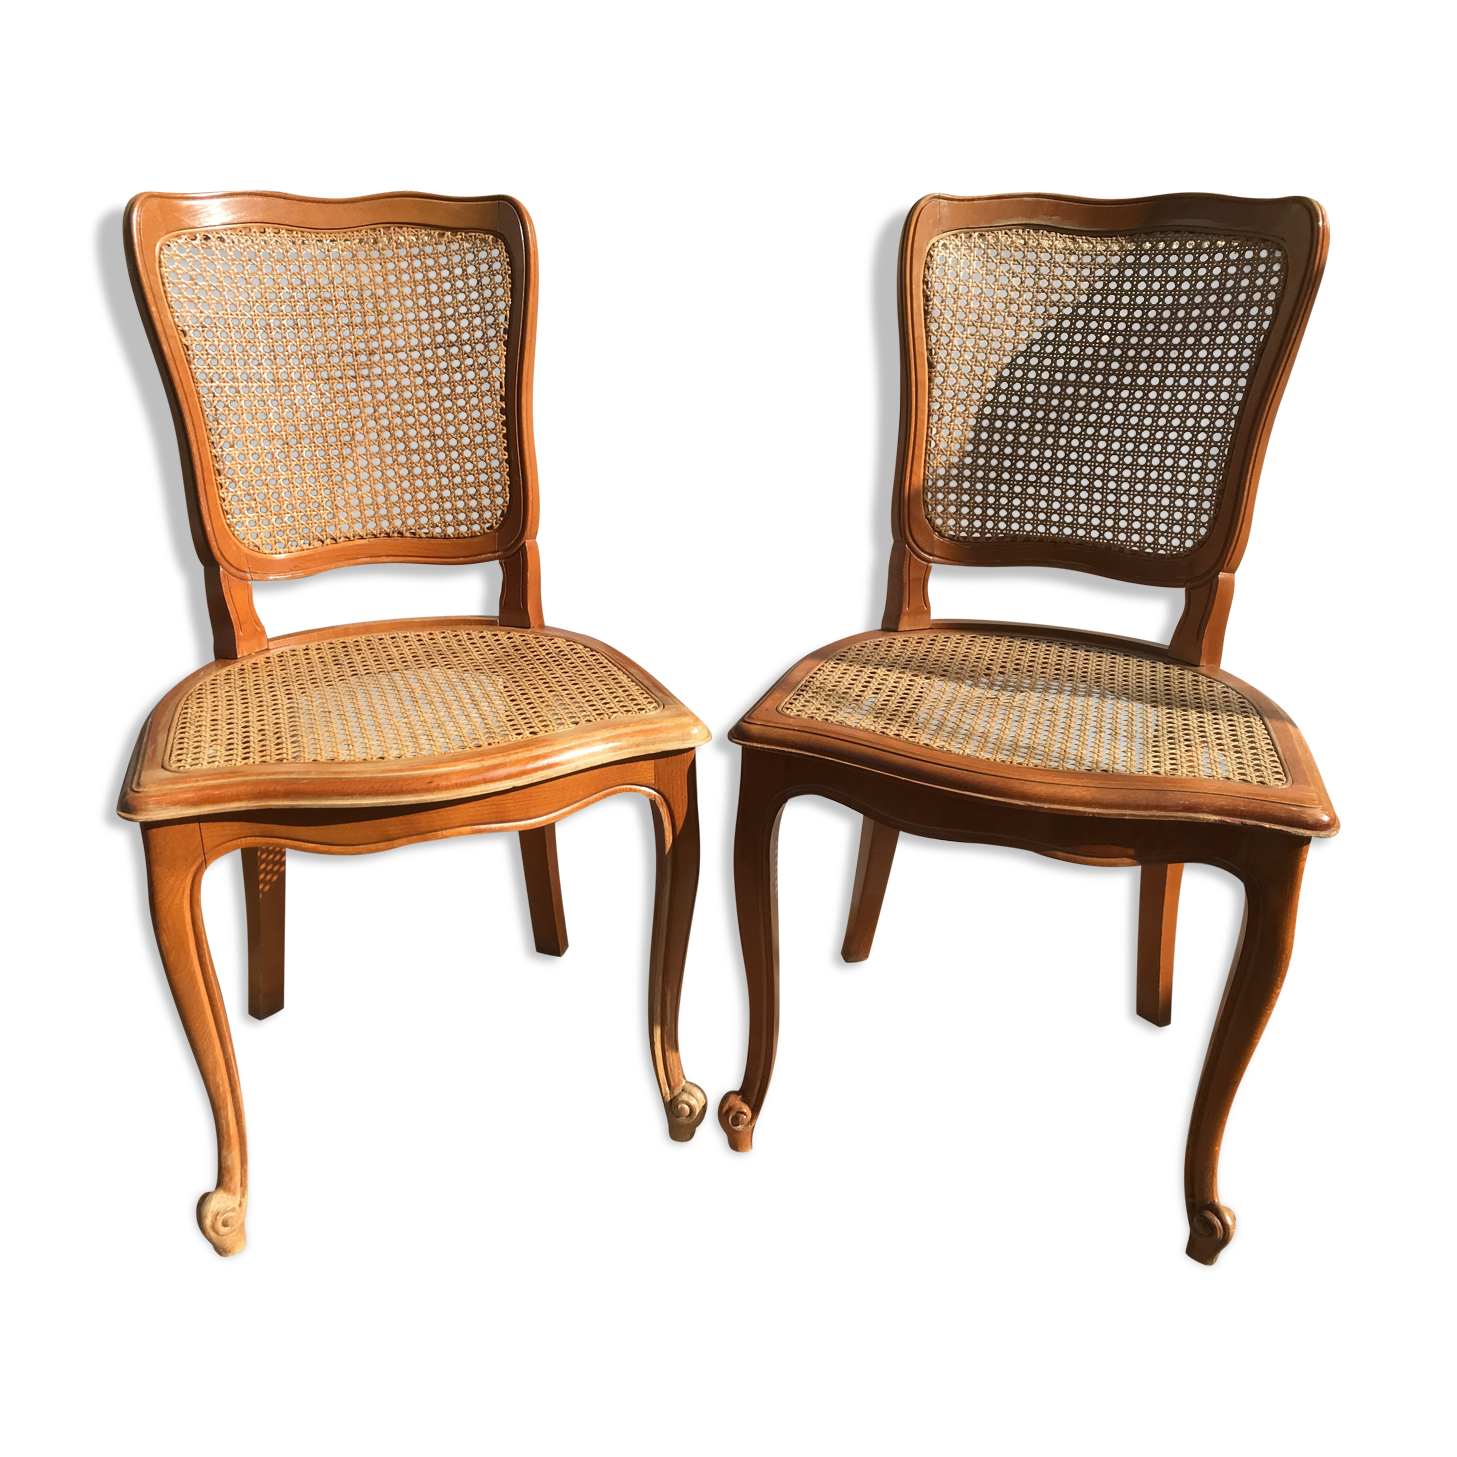 Chaises Style Louis Xv Anciennes Bois Cannage Materiau